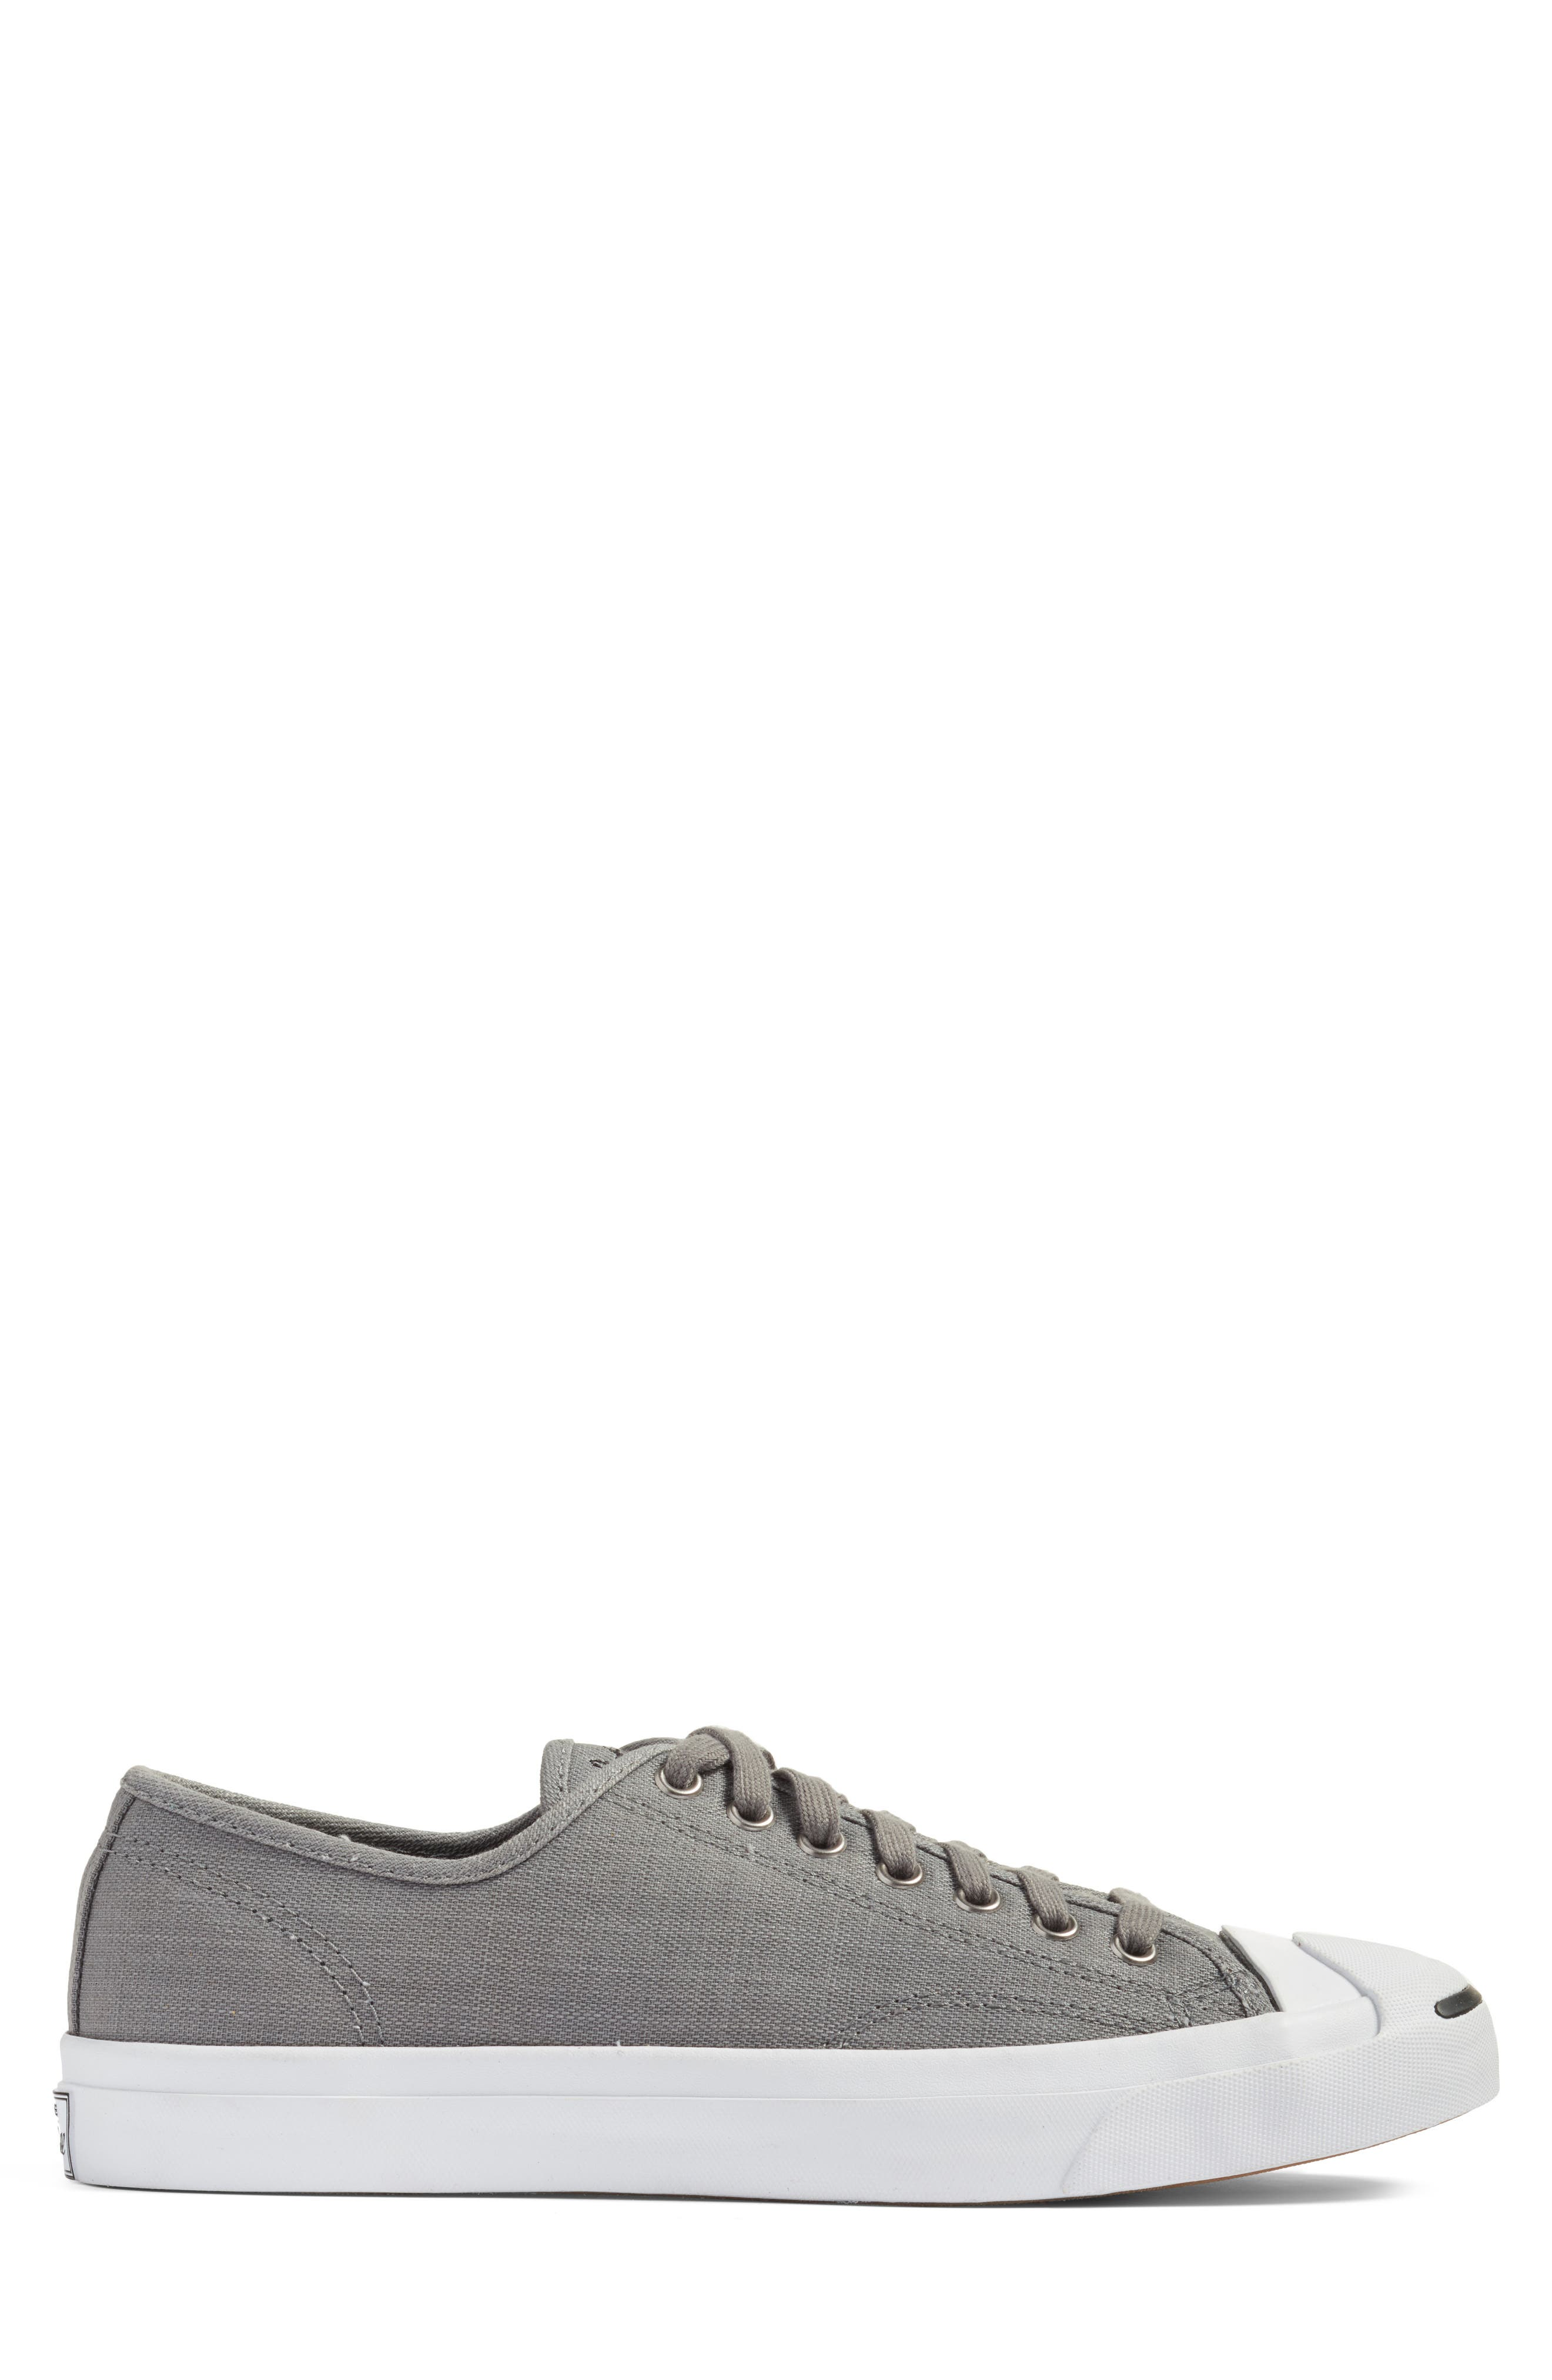 Jack Purcell Ox Sneaker,                             Alternate thumbnail 3, color,                             Mason Grey/ White